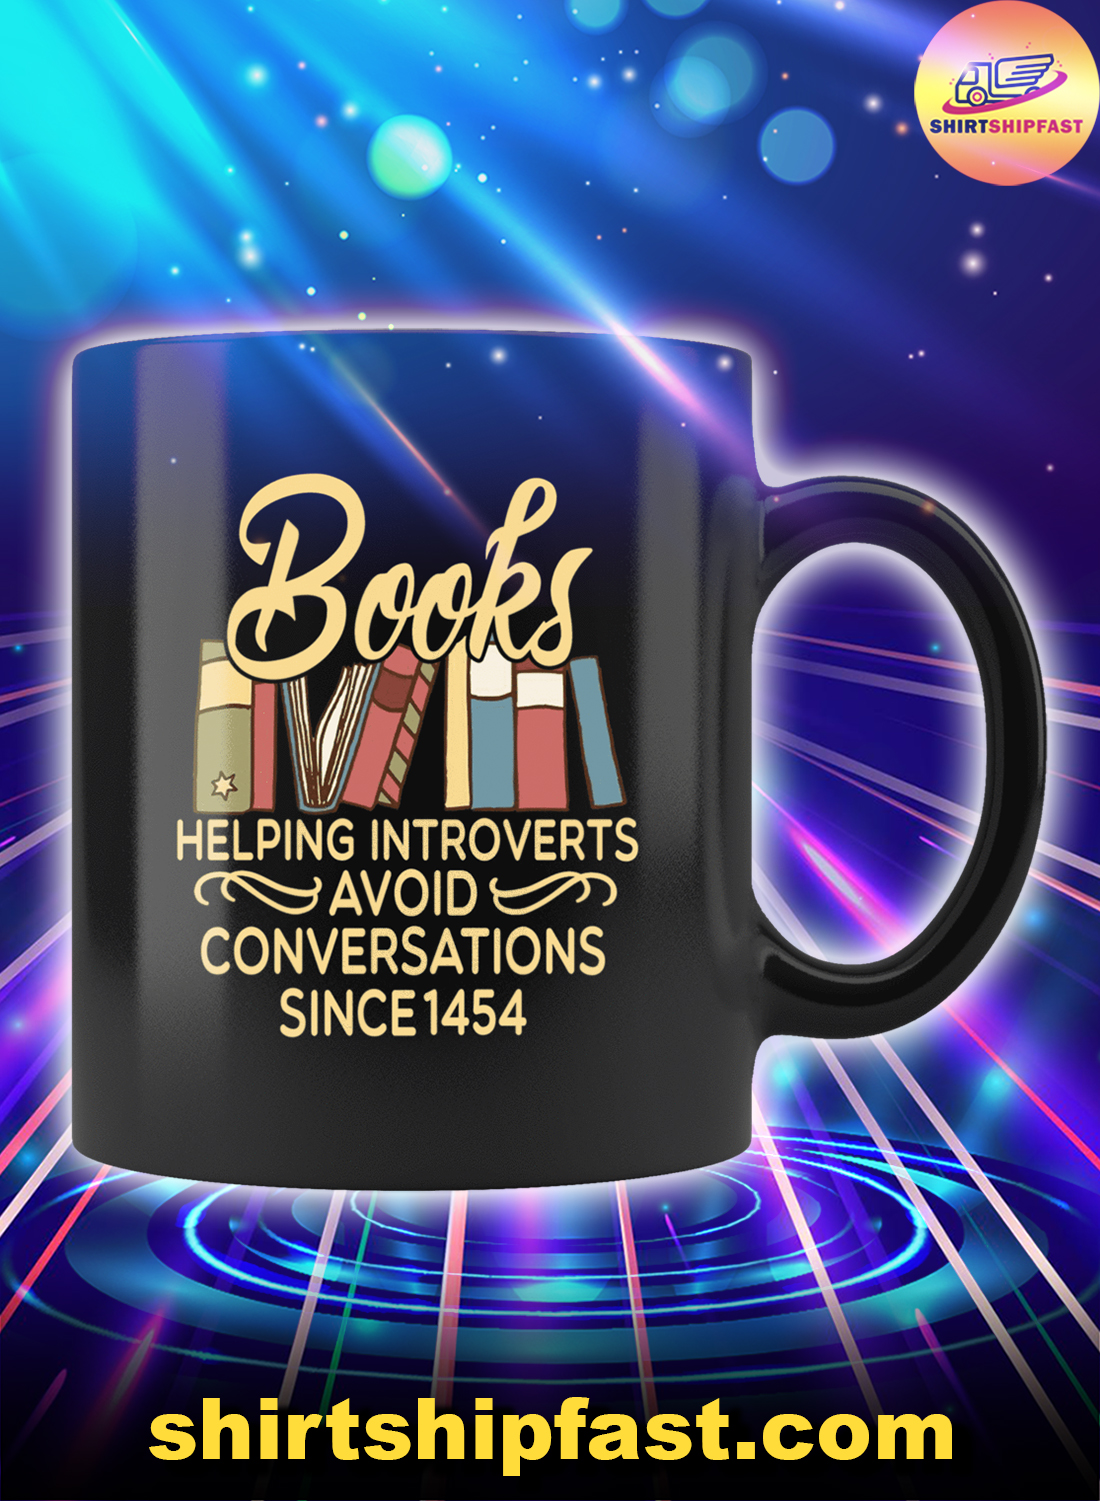 Books helping introverts avoid conversations since 1454 mug